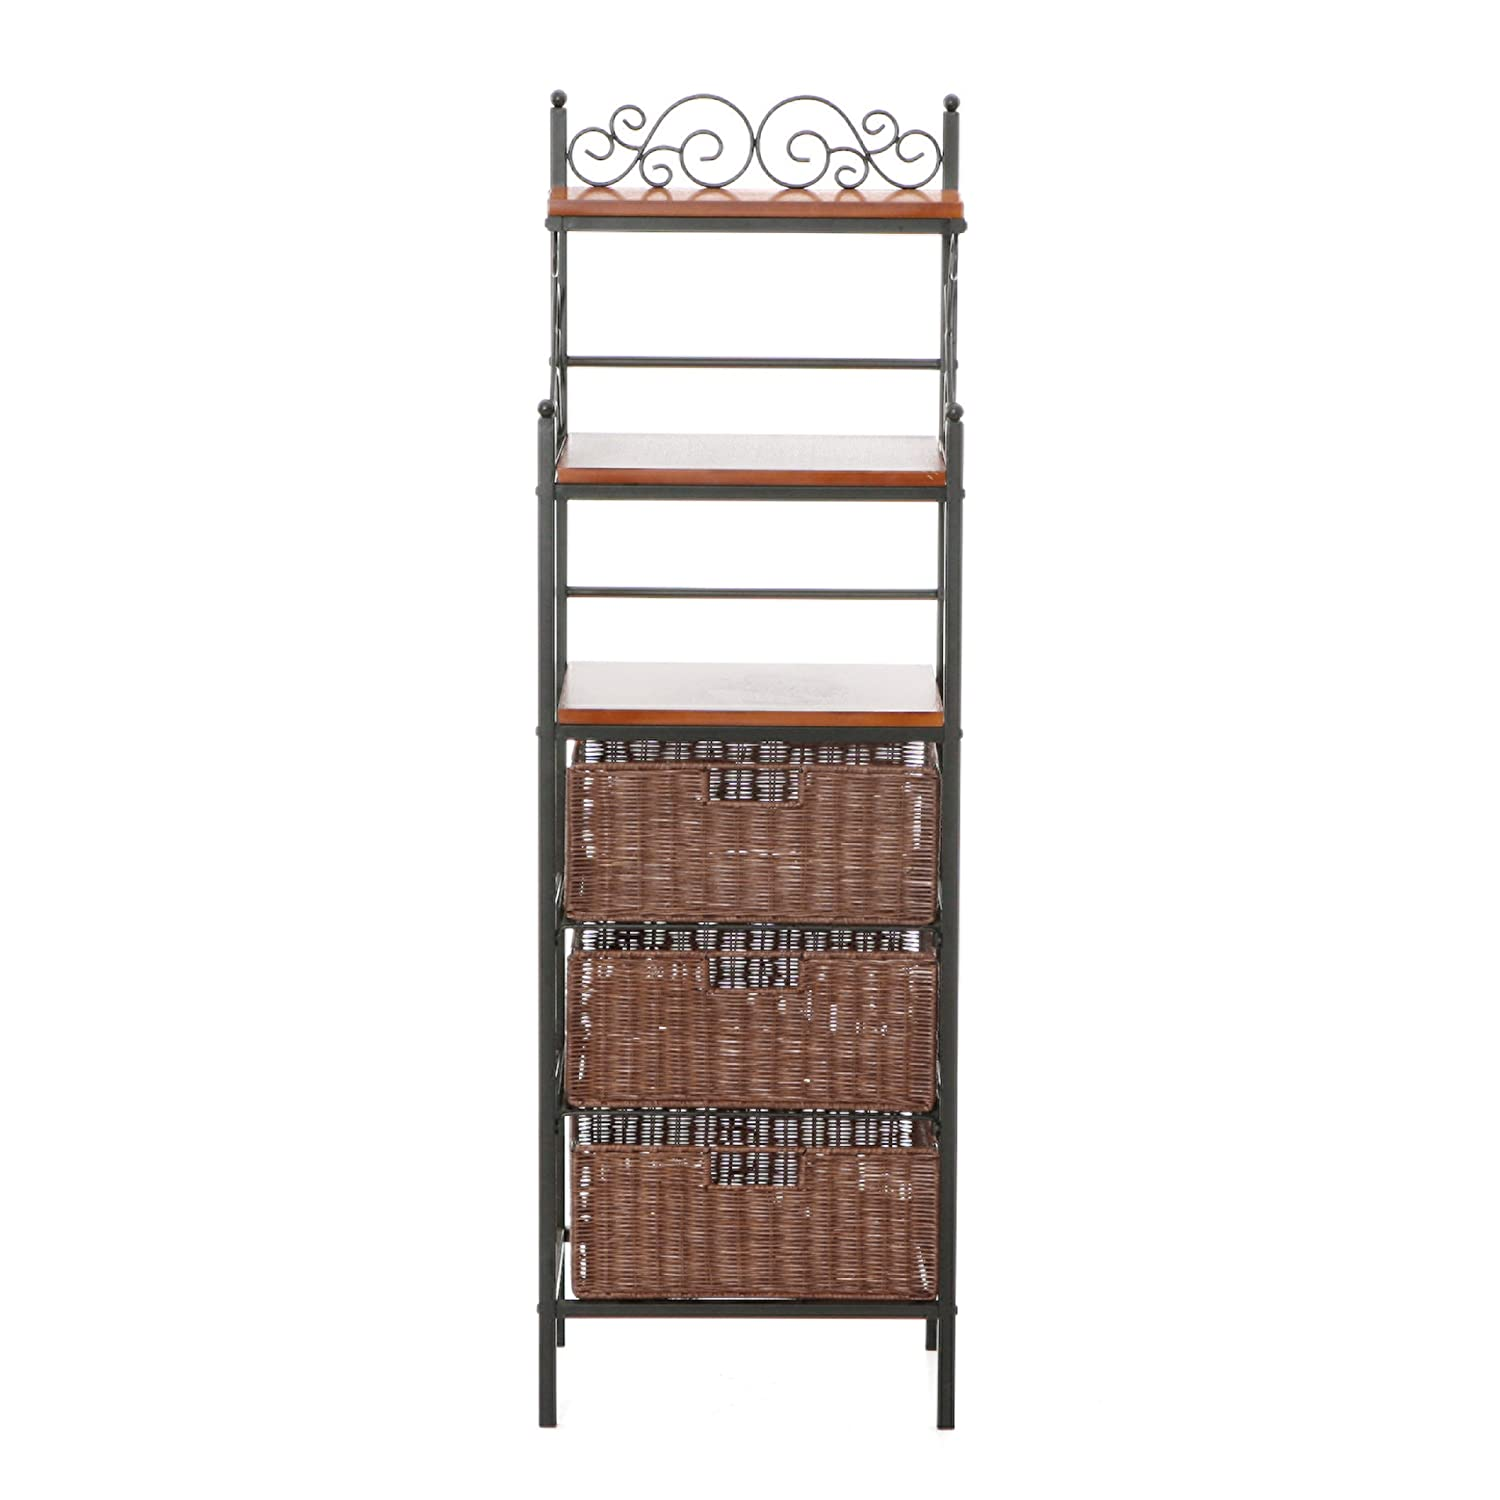 Southern Enterprises, Inc. Manilla 3-Drawer Bakers Rack - Black w/Brown SEI KA9160 UT2005